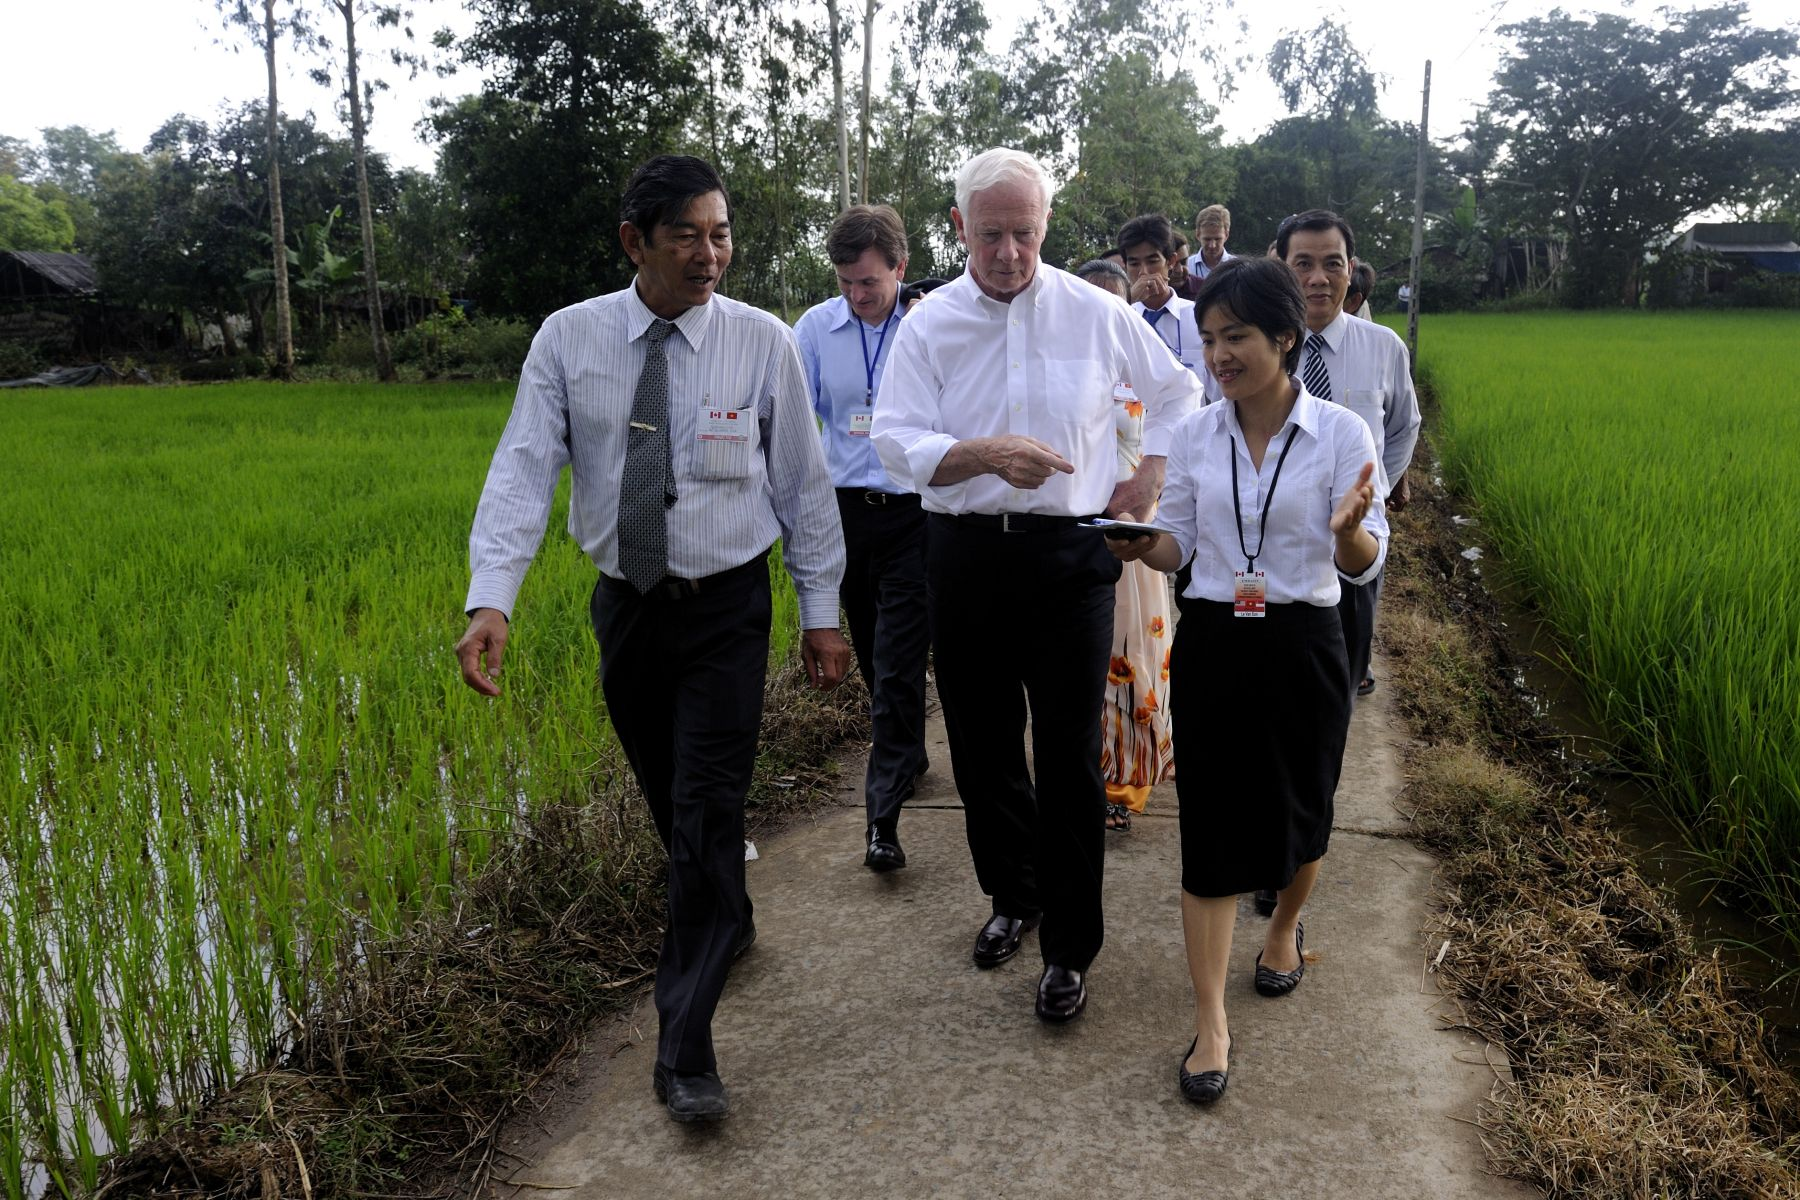 The governor general had the opportunity to visit a fragrant rice field and observe the application of an organic rice pesticide. They also visited a Khmer dairy farm and a milk collection point of the Evergrowth Dairy Cooperative, which are both supported as part of Canadian International Development Agency (CIDA) project.